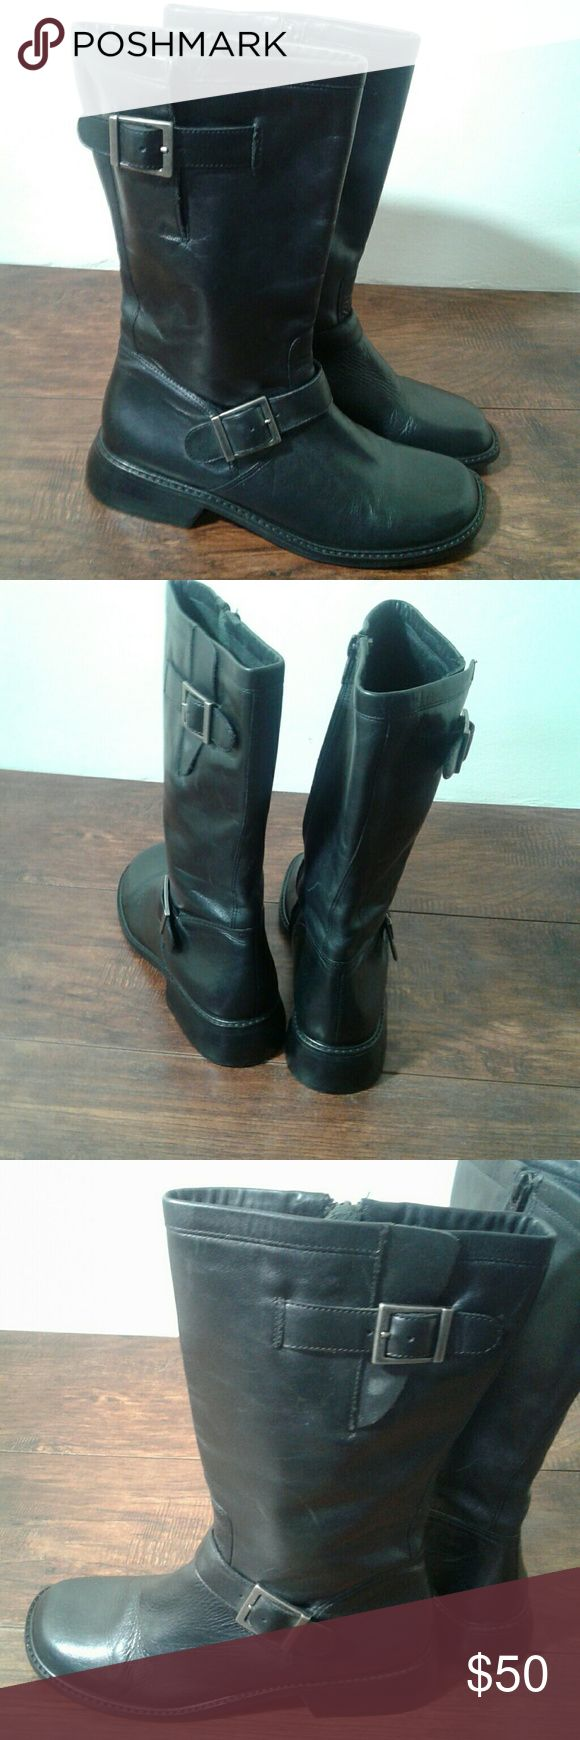 Donald j pliner black leather   moto boots Black Donald j pliner leather moto boots Size:8.5 Condition:used light wear but overall in good condition comes from a smoke free home  Accept paypal  payment must be made within 2 days of auction ending  please note this item is used  Thank you Donald J. Pliner Shoes Combat & Moto Boots